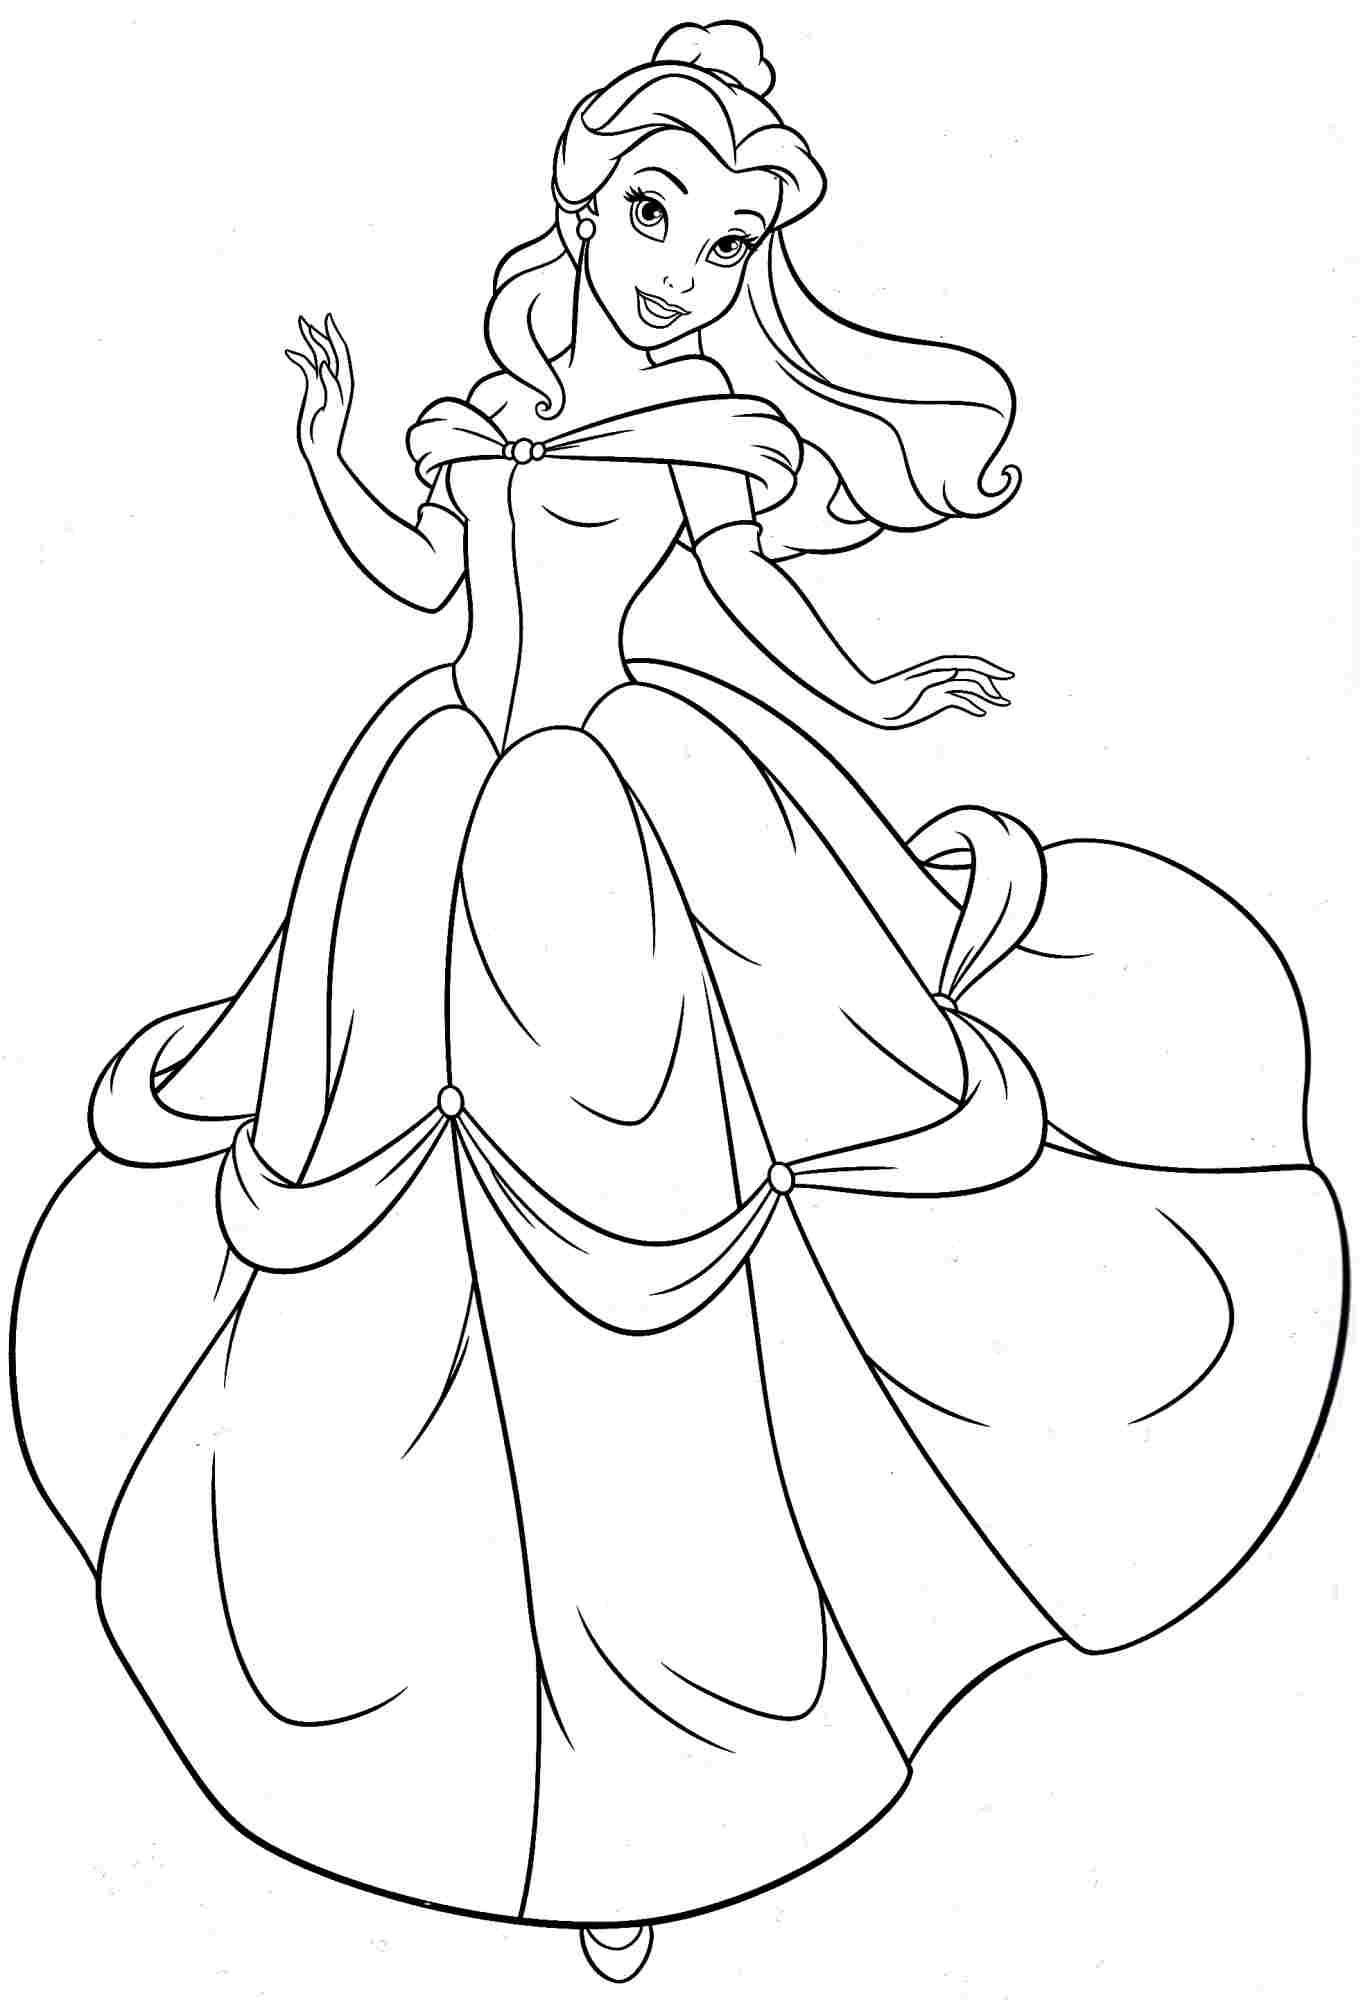 Disney Princess Belle Coloring Pages For Girls | Examples ...